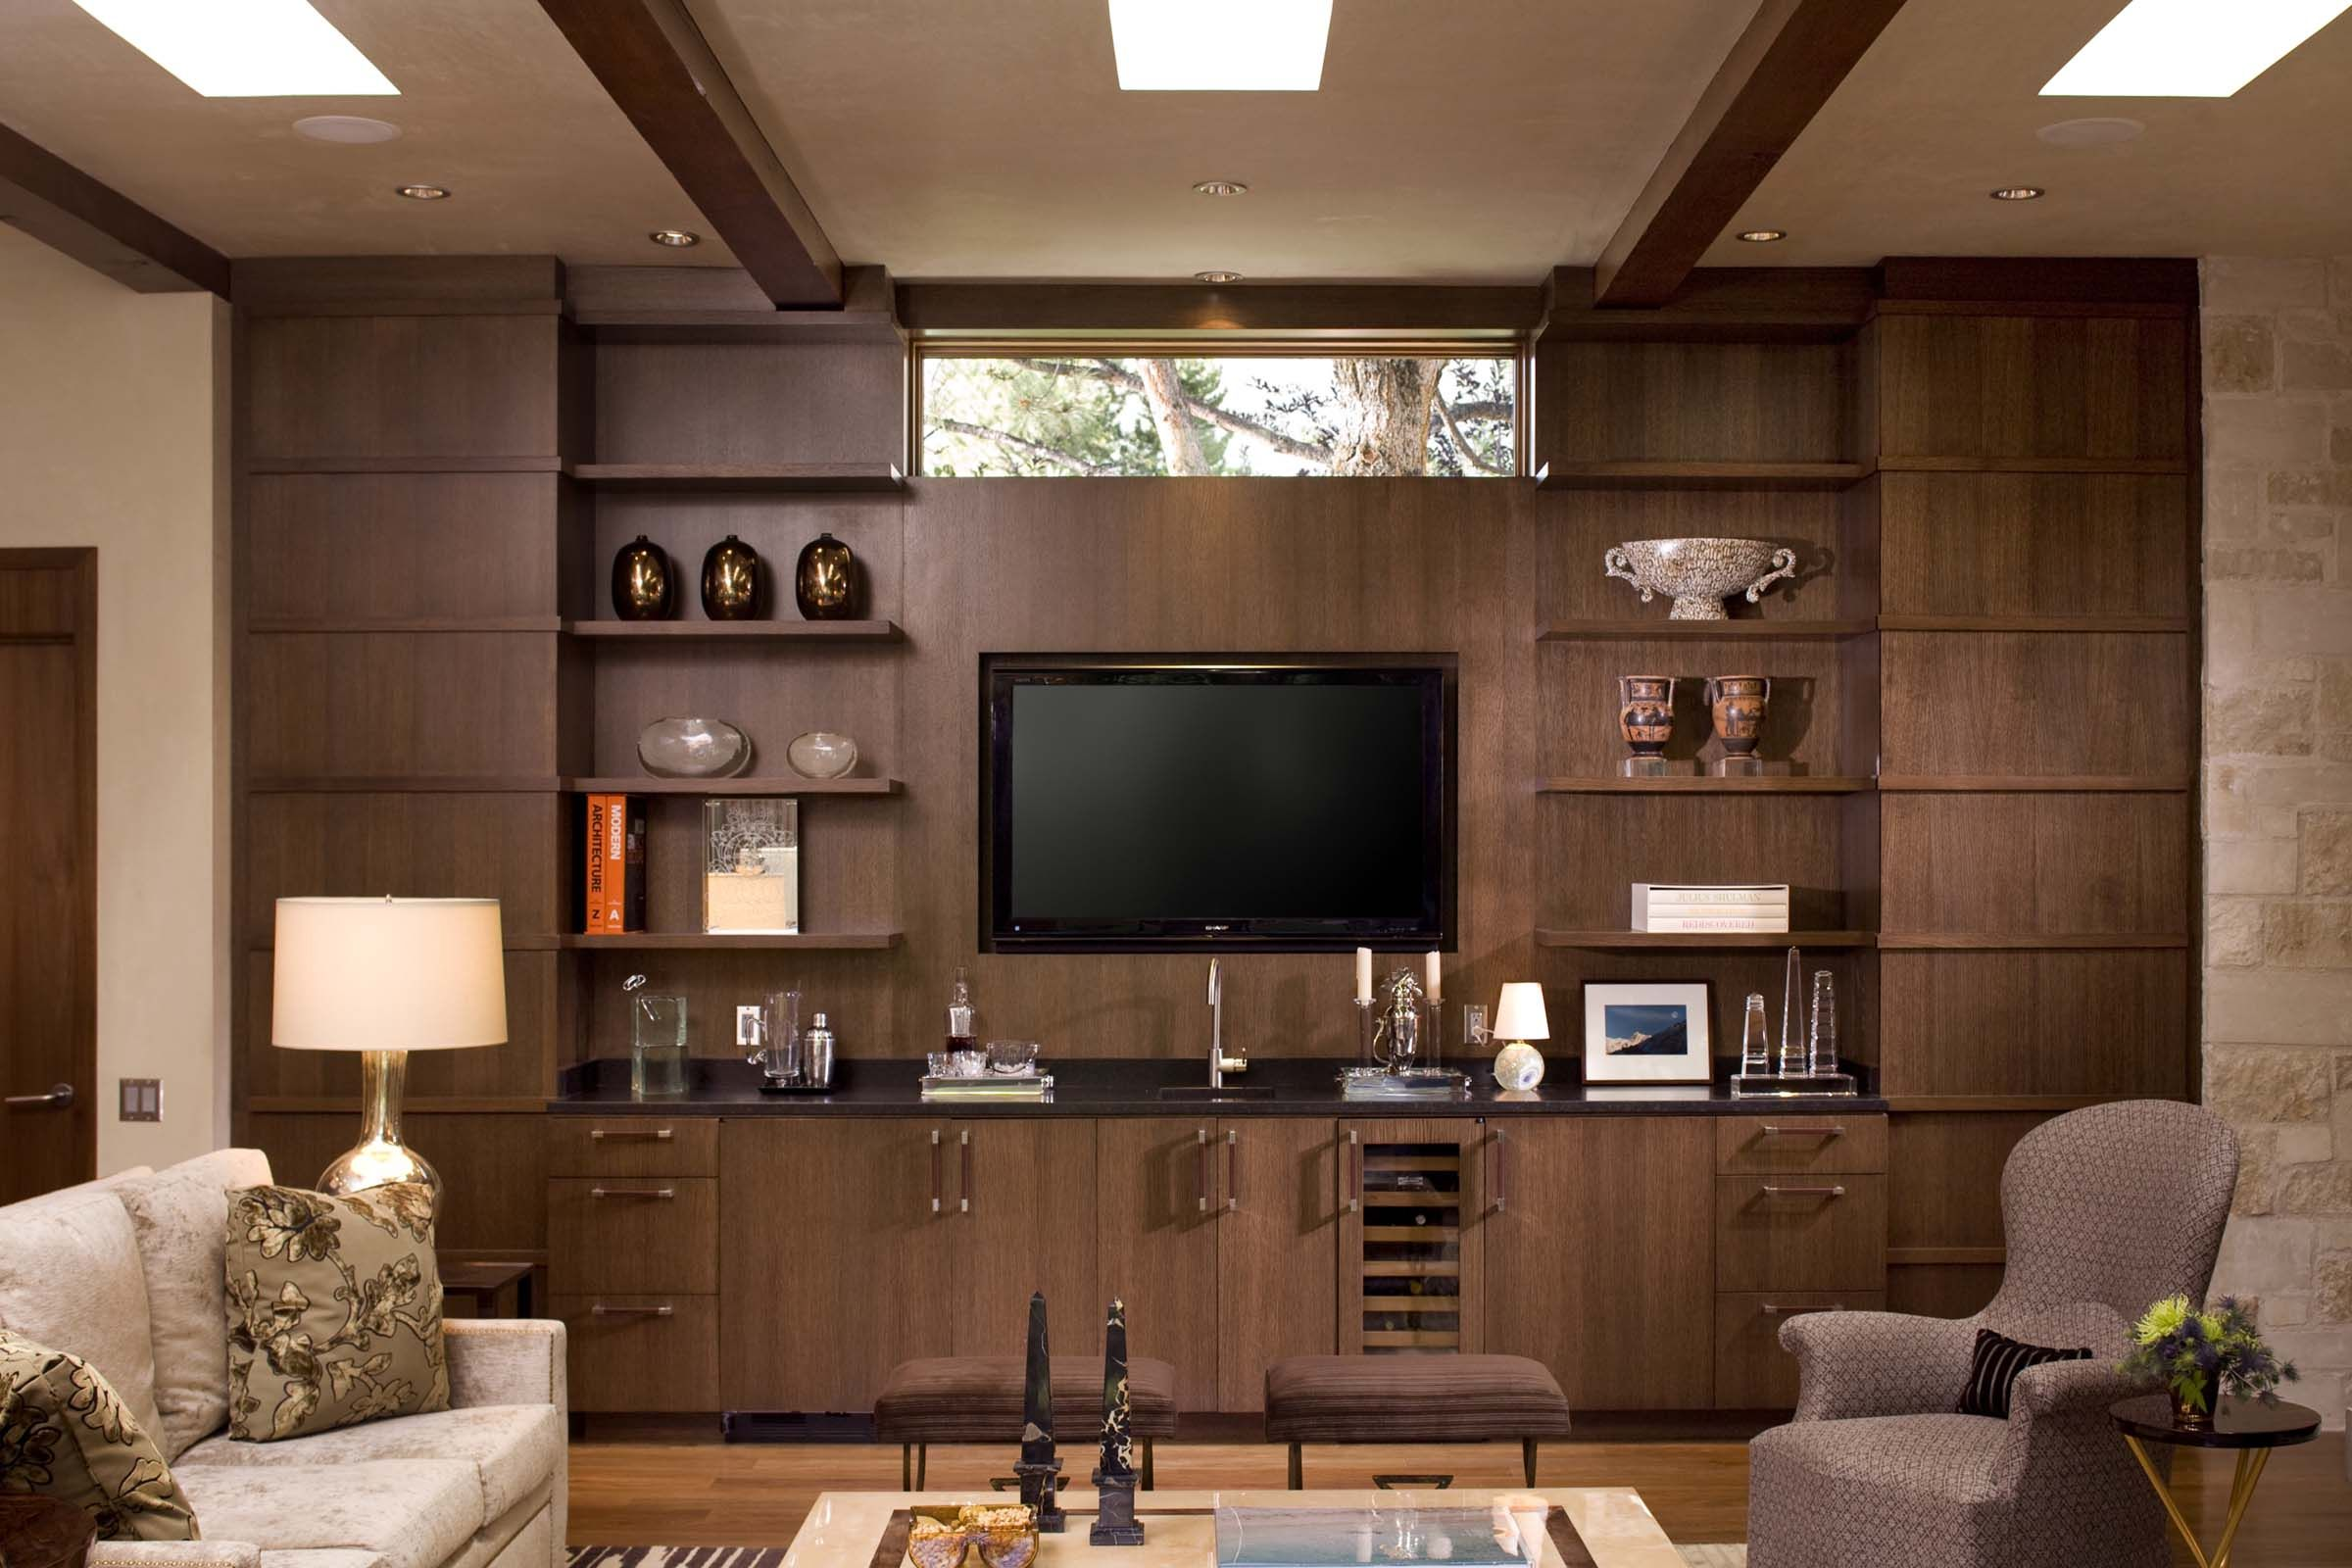 Designs of tv cabinets in living room - Latest Tv Cabinet Designs Outdoor Tv Cabinet Ideas Outdoor Tv